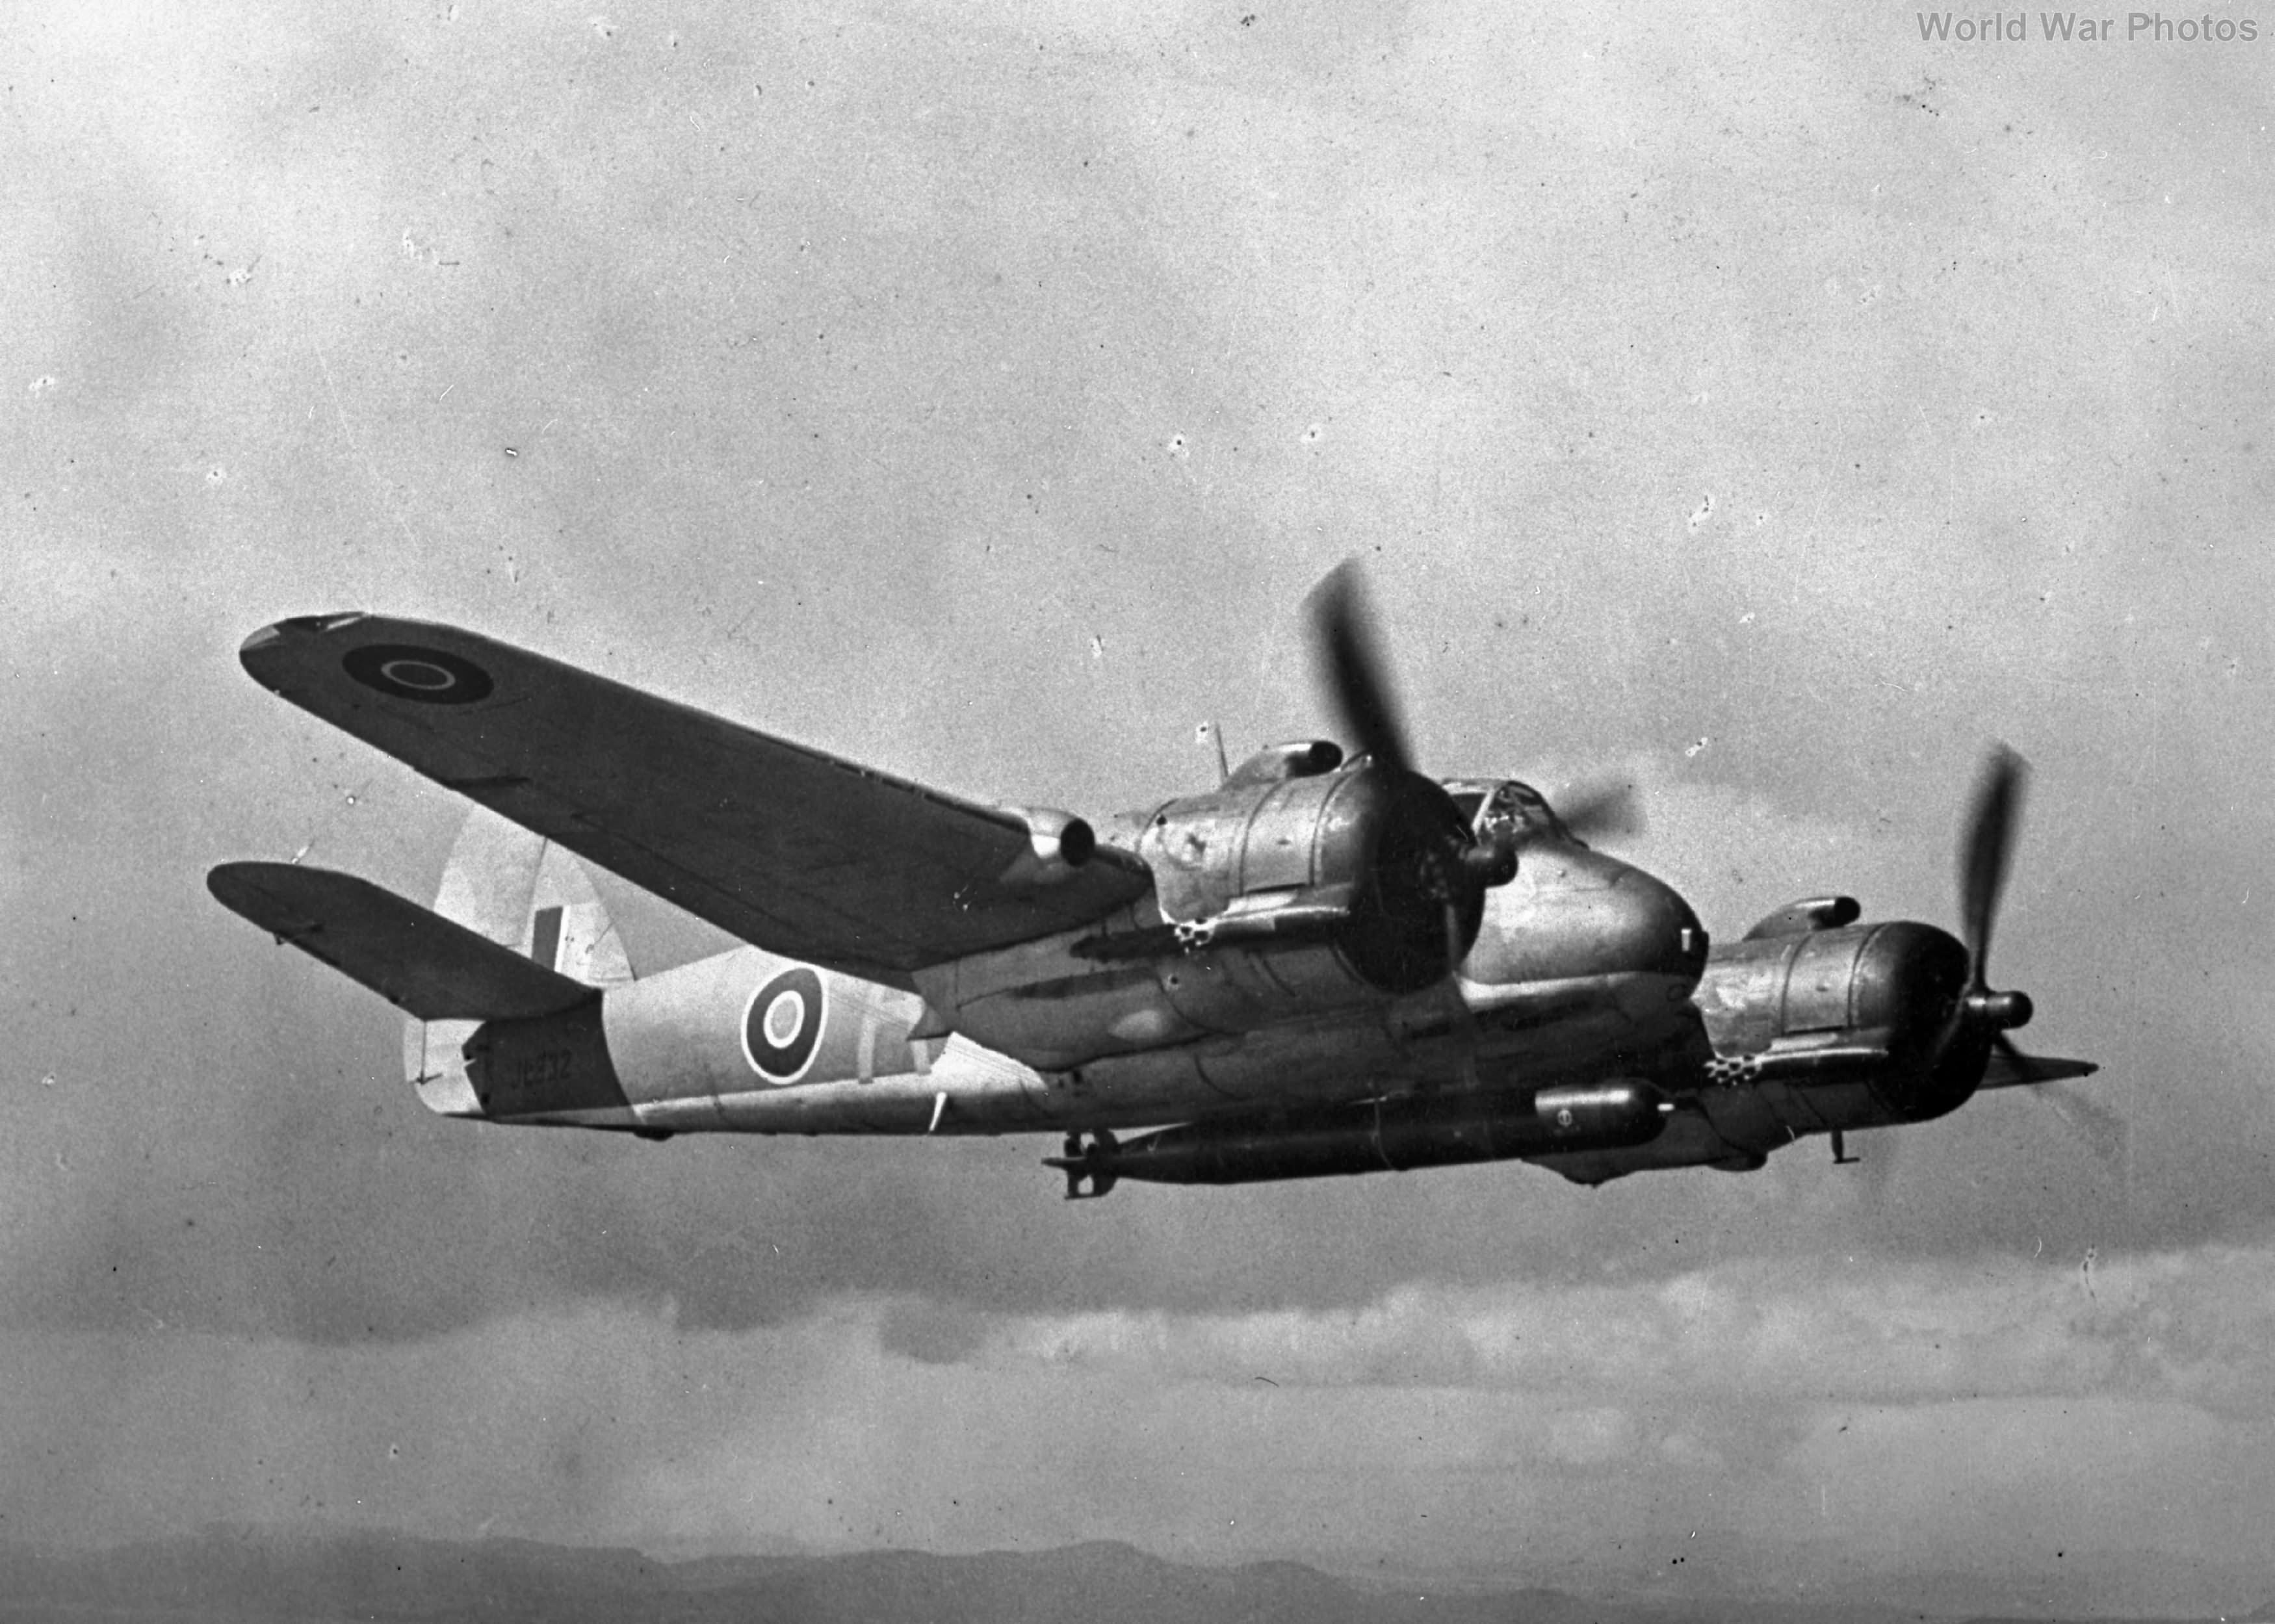 489 Squadron Beaufighter 1943